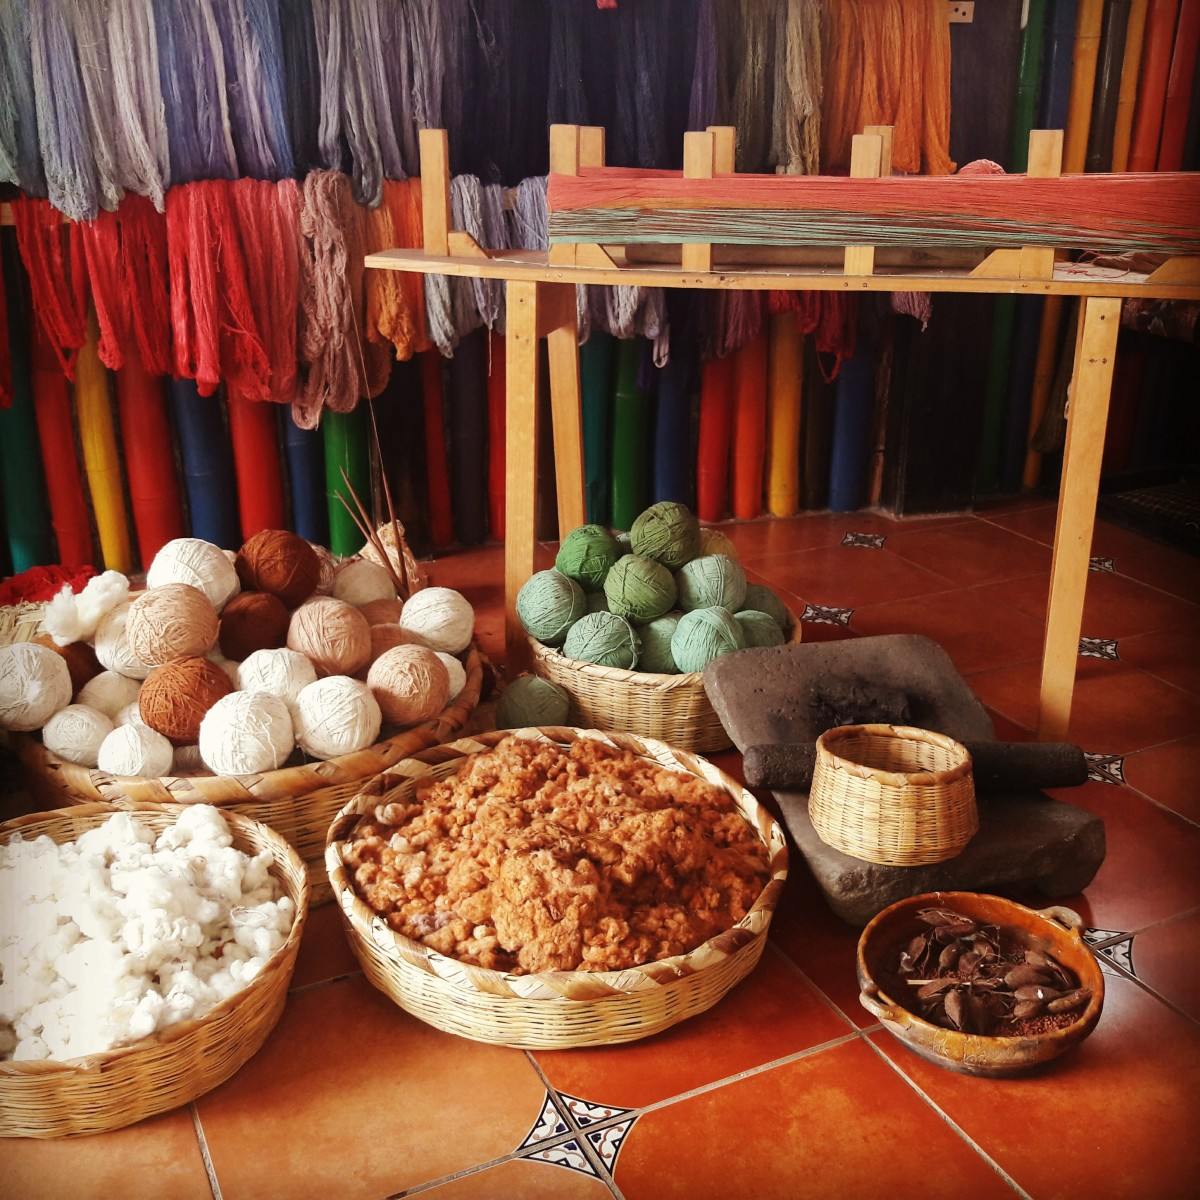 Natural dye and materials used in local handicrafts. Photo: Ethical Fashion Guatemala